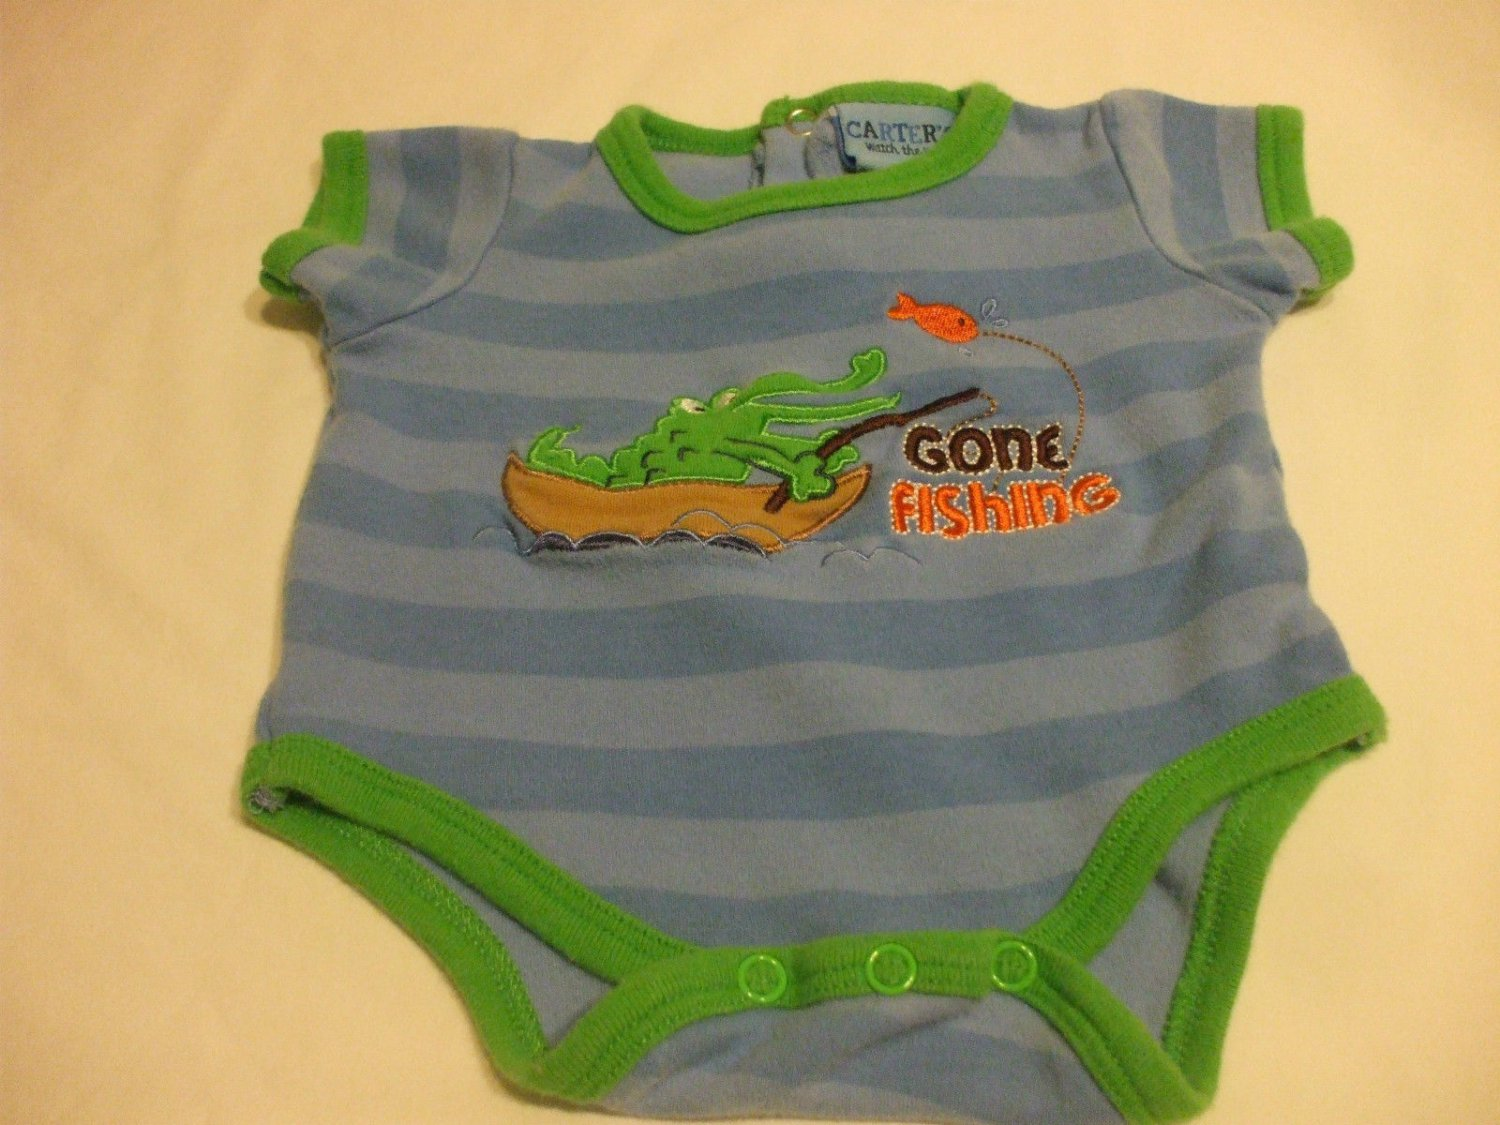 Baby Romper 0-3 Months 100%  Cotton  Carters Watch The Wear